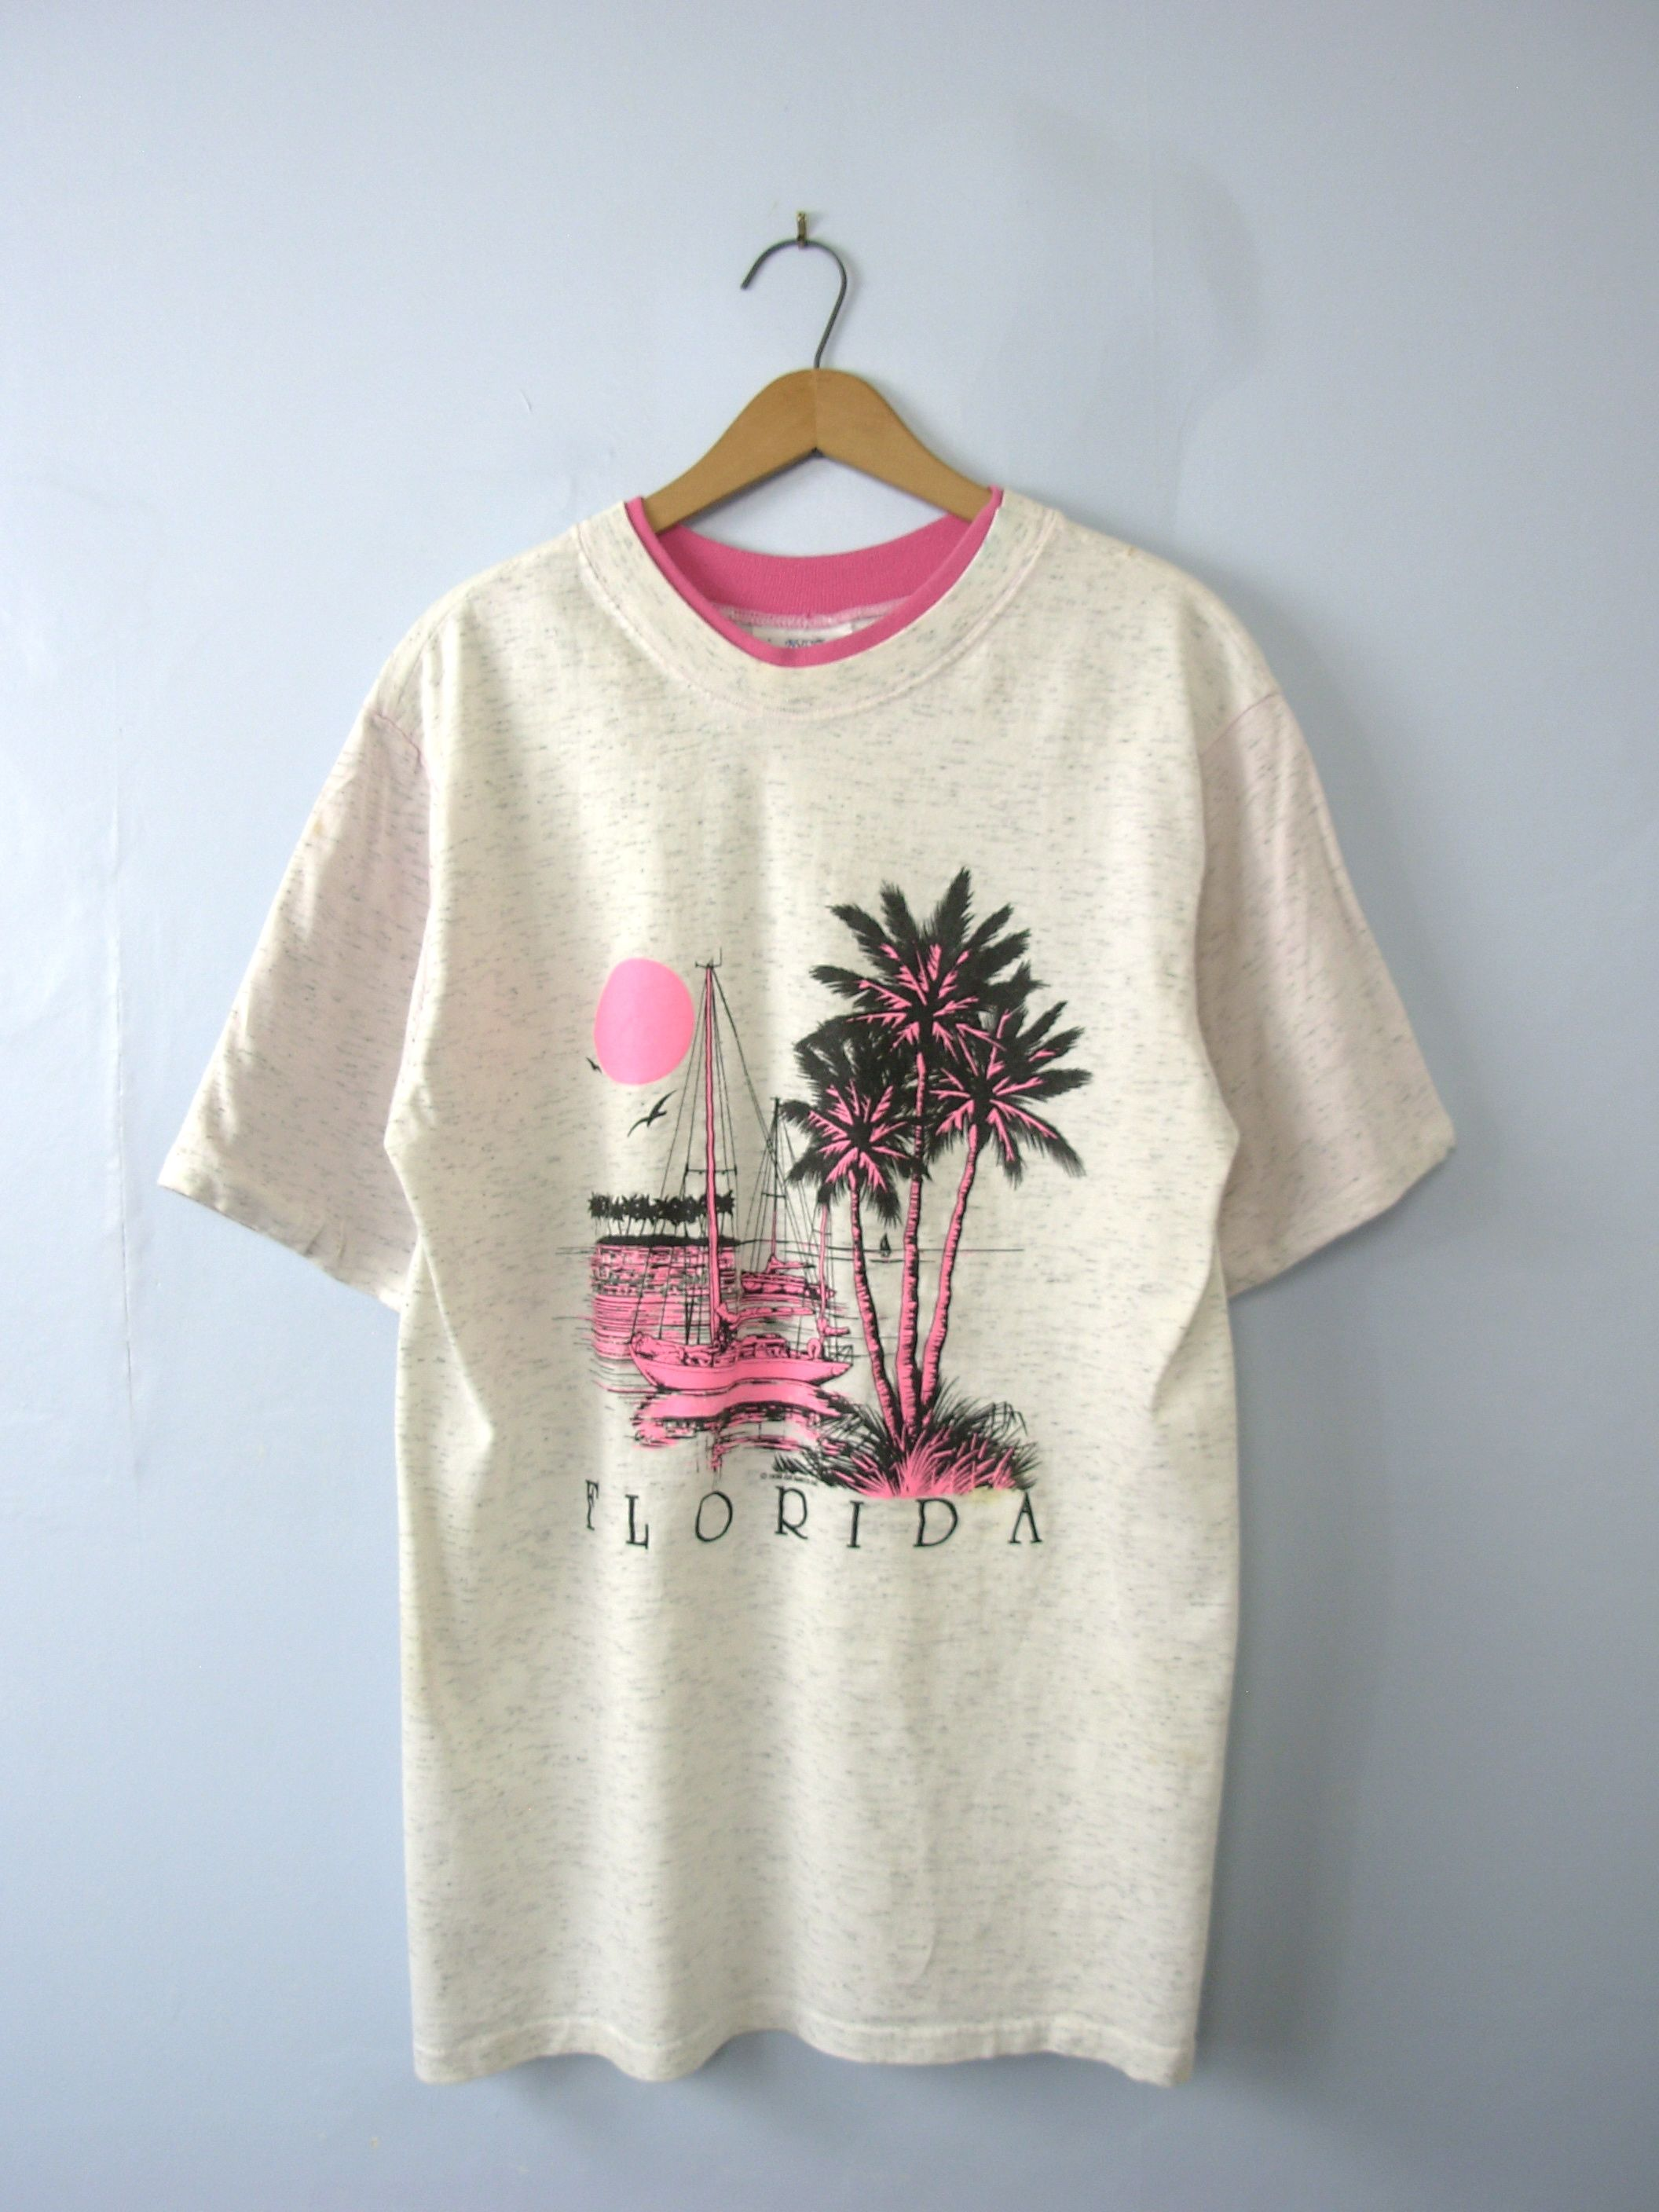 One vintage 1990s graphic tee florida sunset pink shirt